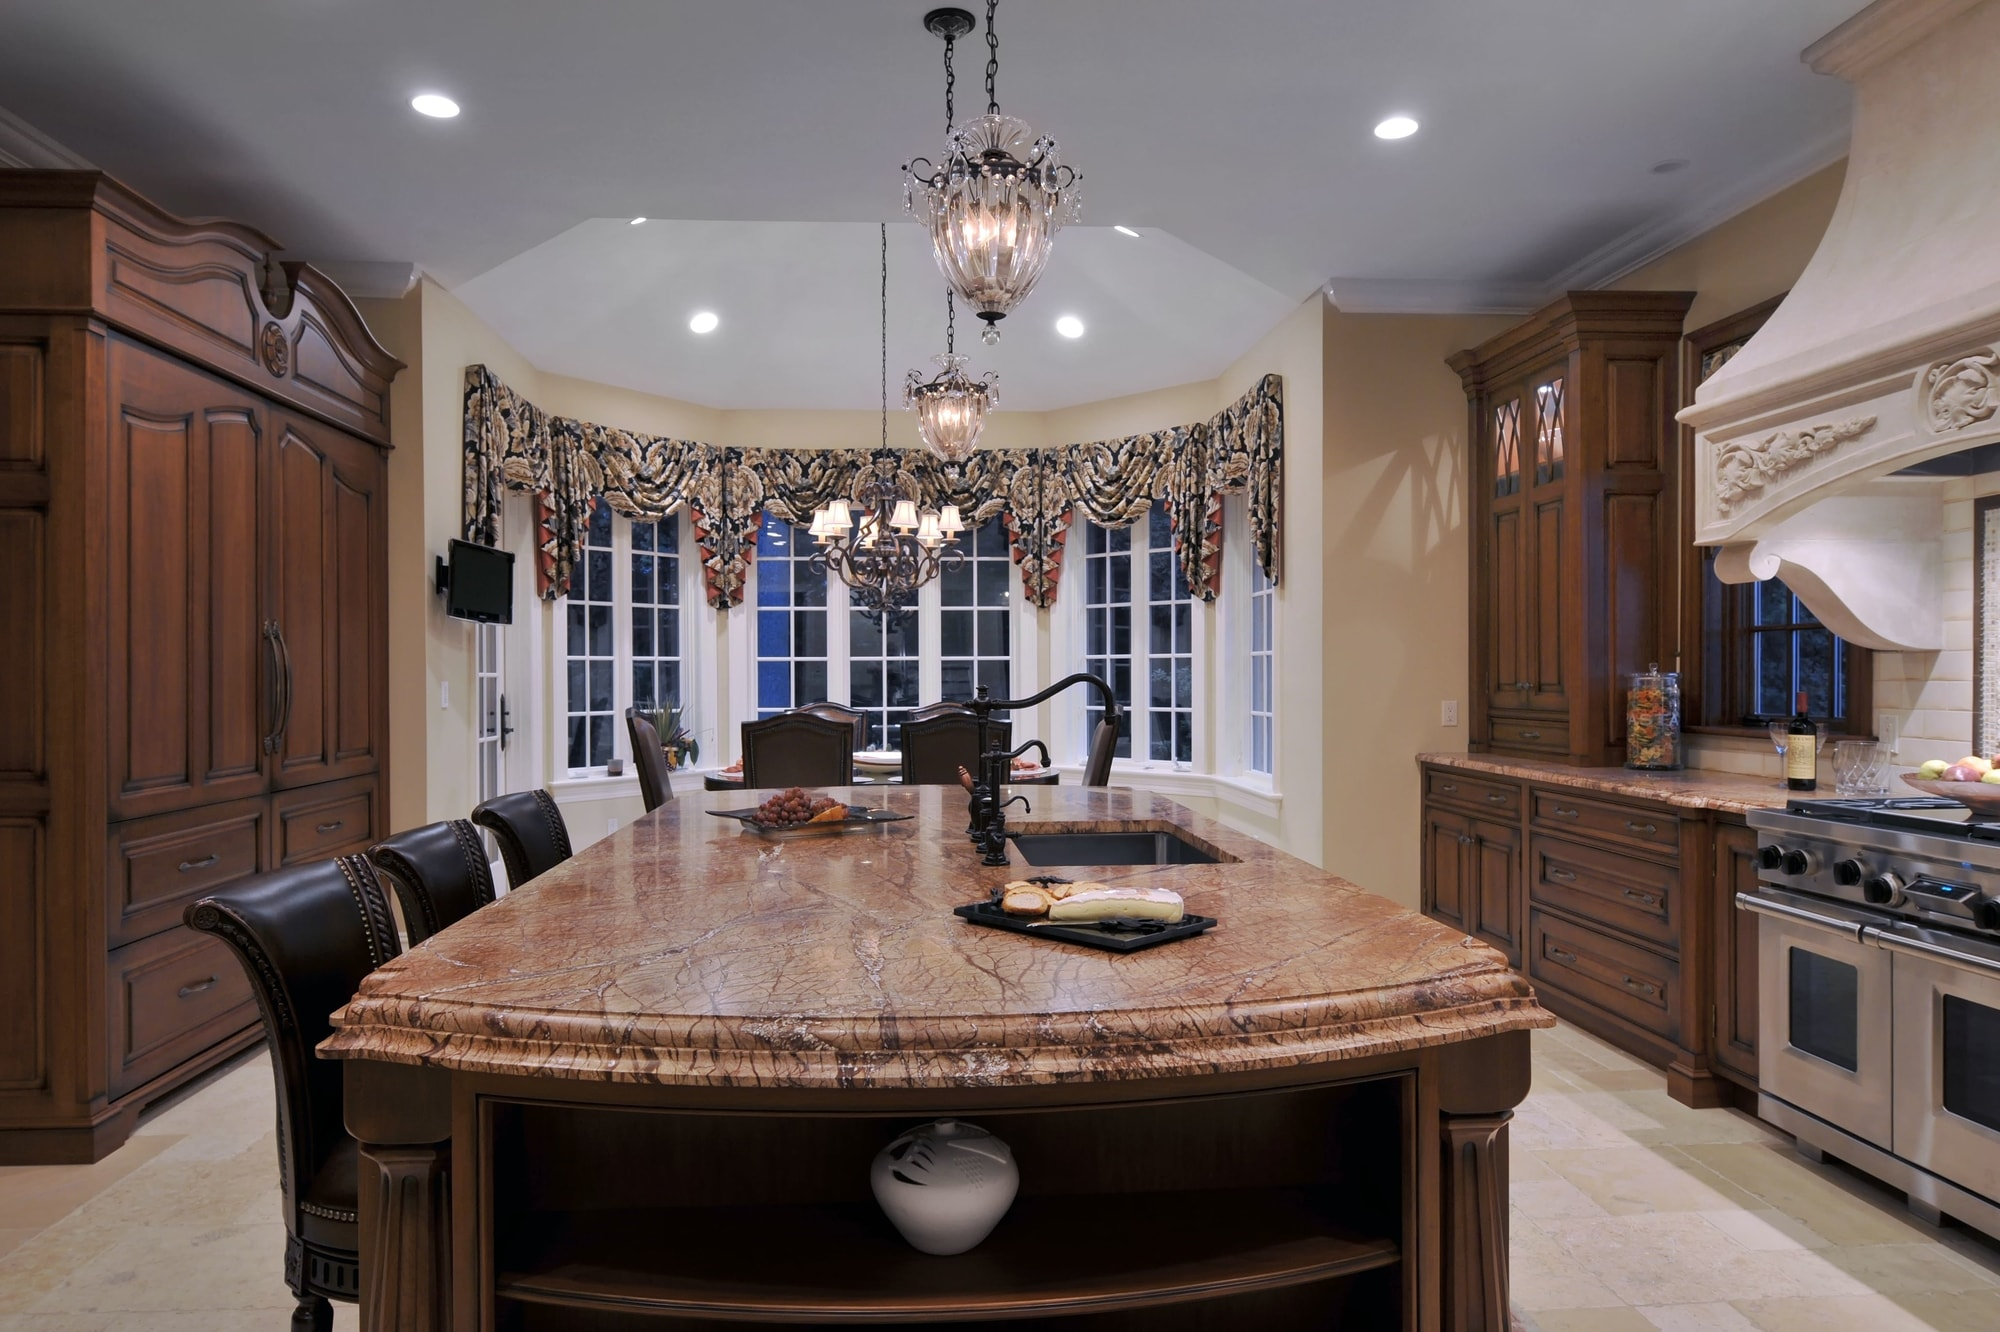 Traditional style kitchen with granite countertop